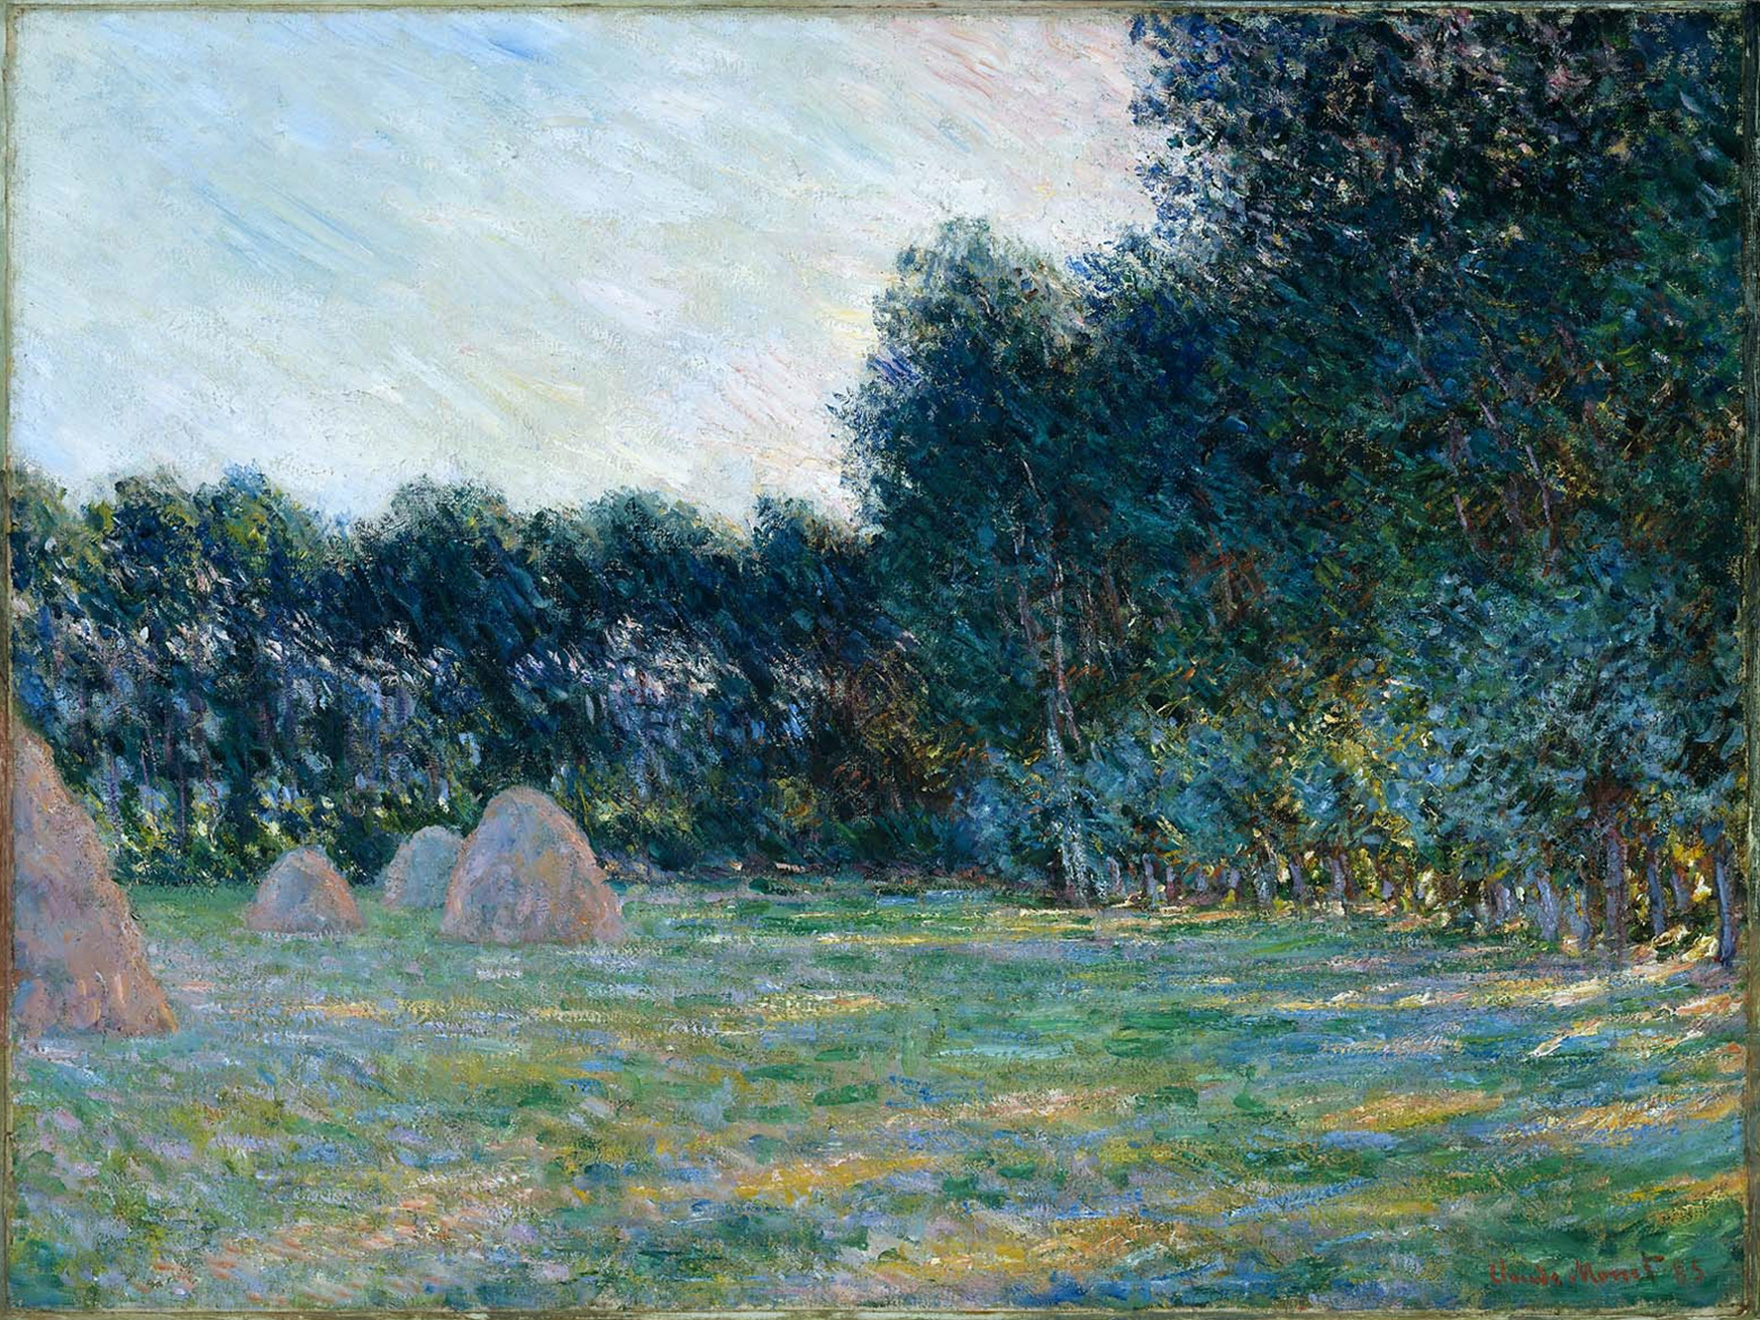 Claude Monet, Meadow with Haystacks near Giverny, 1885